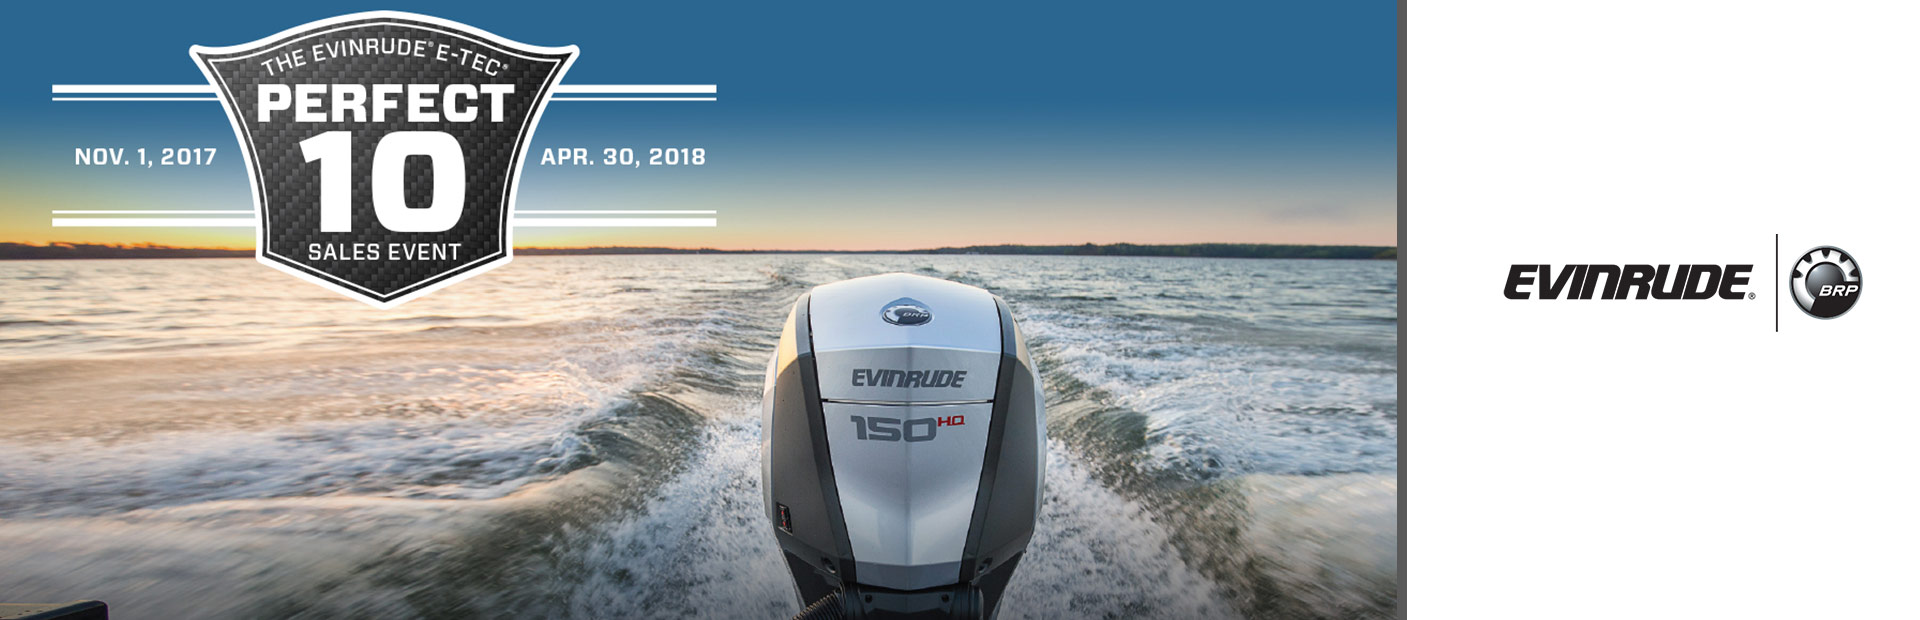 Evinrude: The Evinrude® E-TEC® Perfect 10 Sales Event